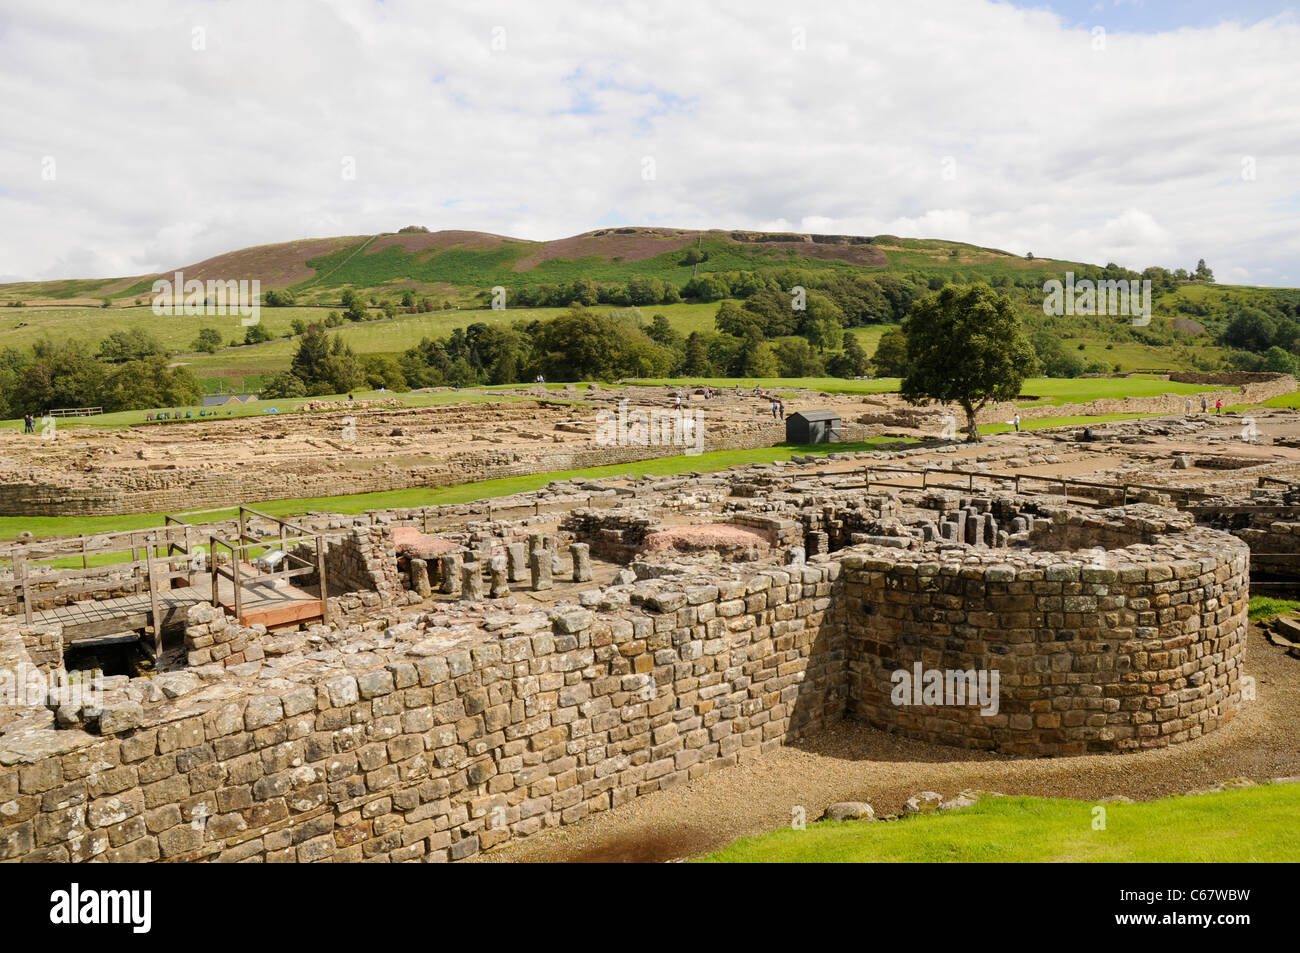 Military bathhouse, in the vicus (civilian town) just outside the Roman fort of Vindolanda, near Hadrian's Wall, - Stock Image